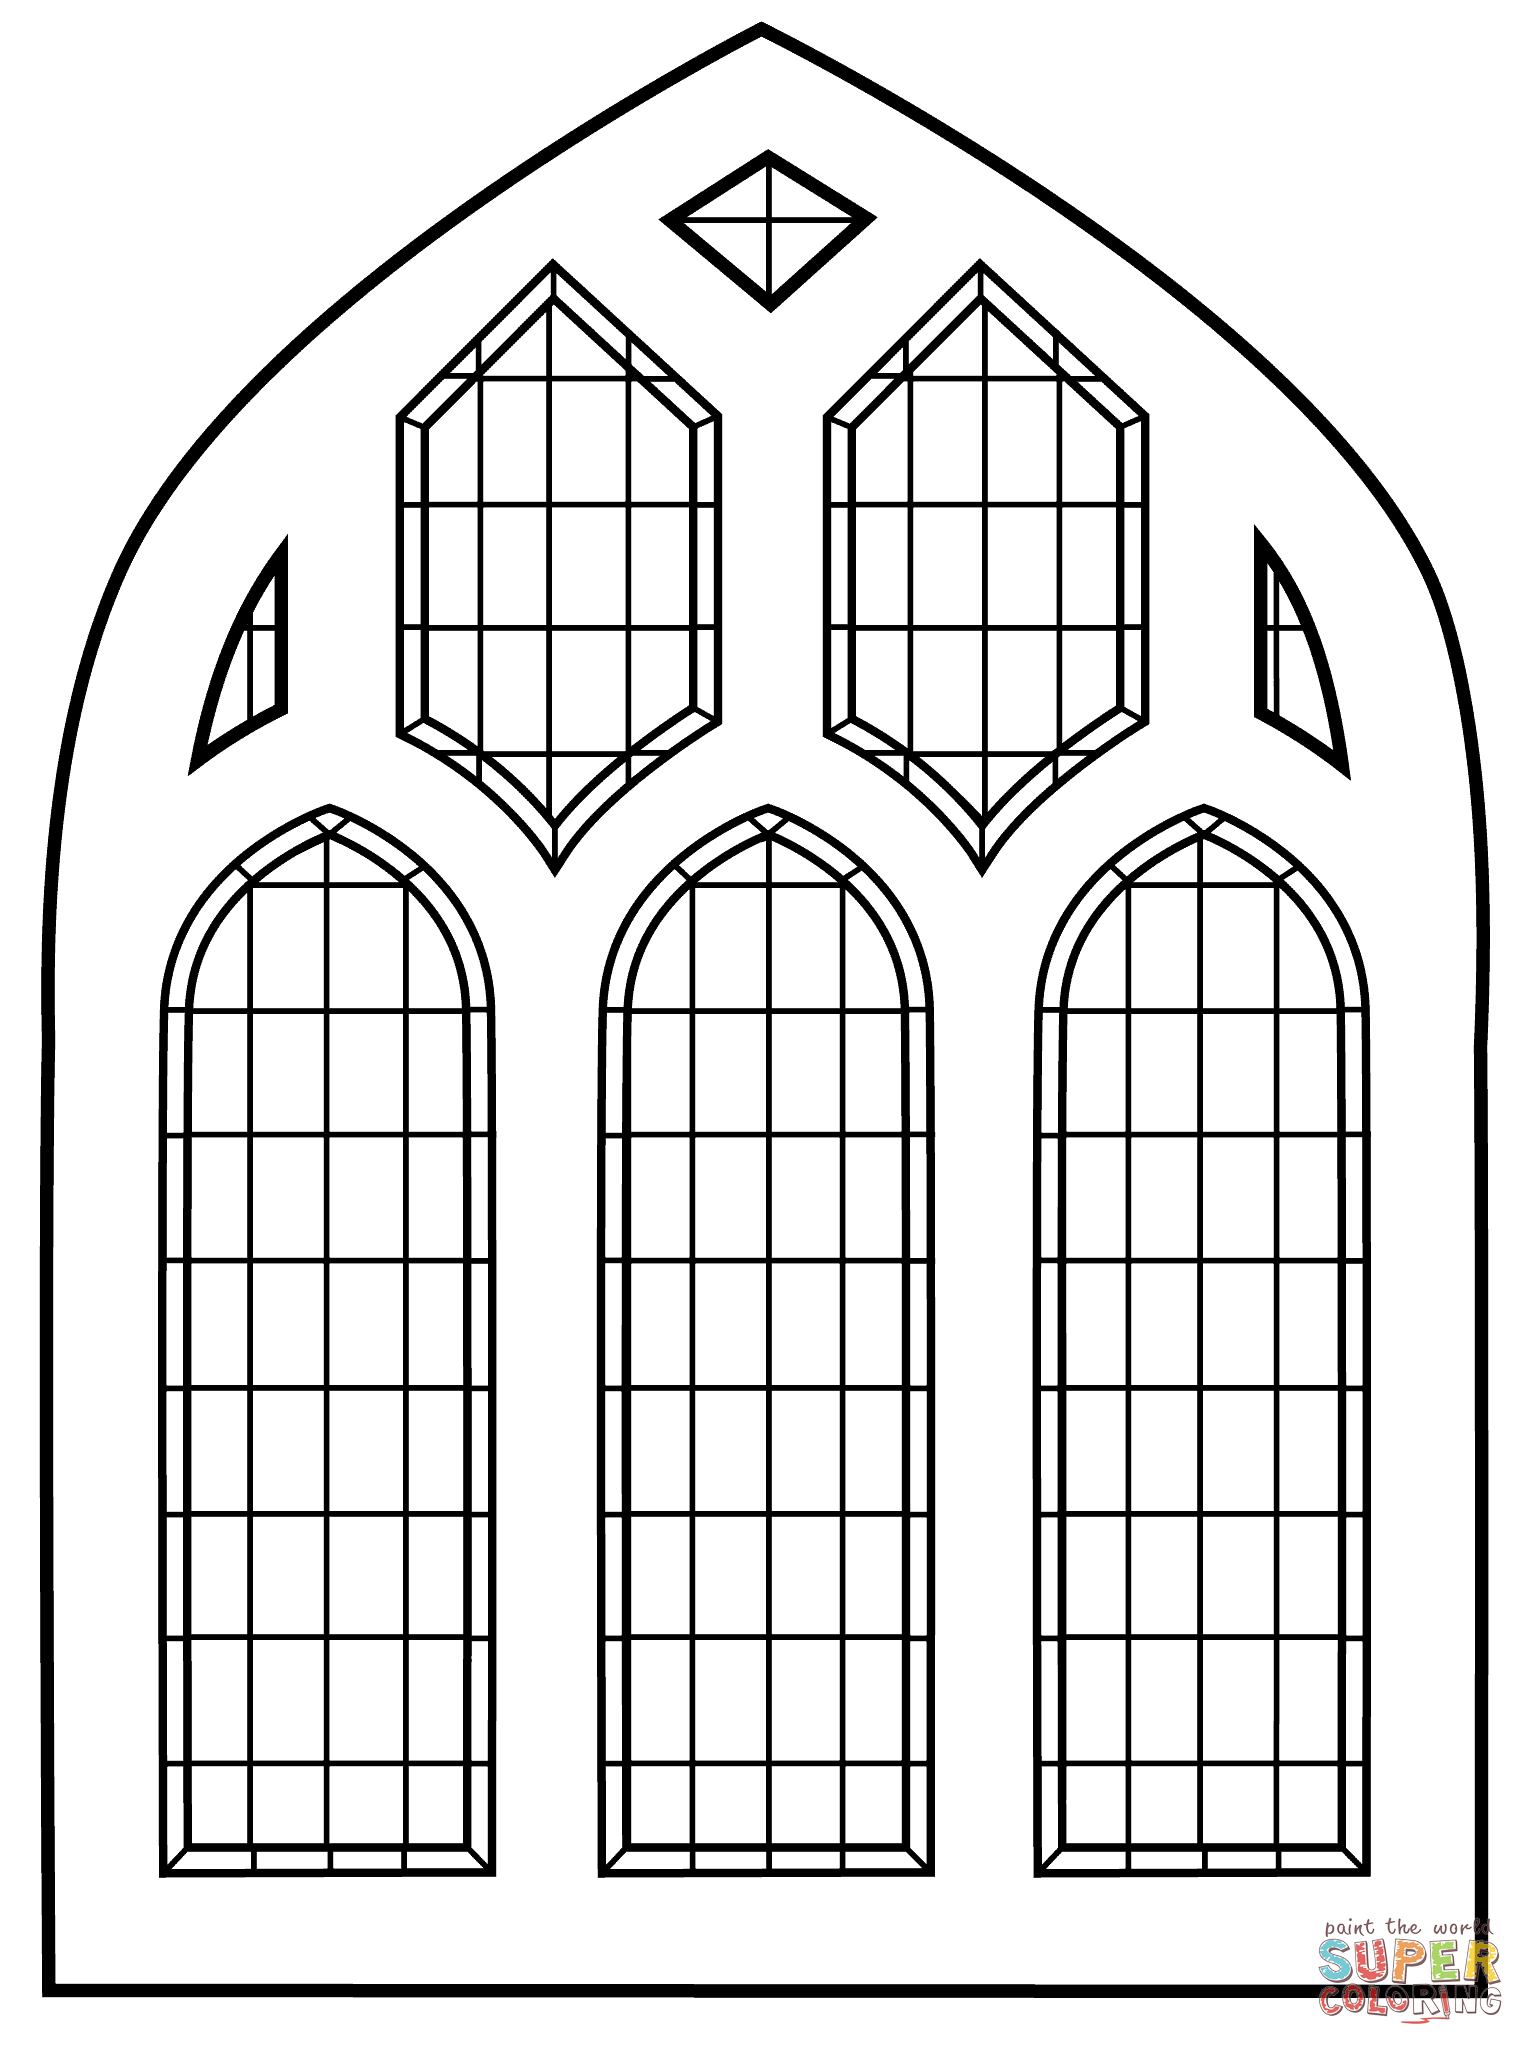 stained glass window coloring pages free printable stained glass window coloring pages coloring window glass stained pages